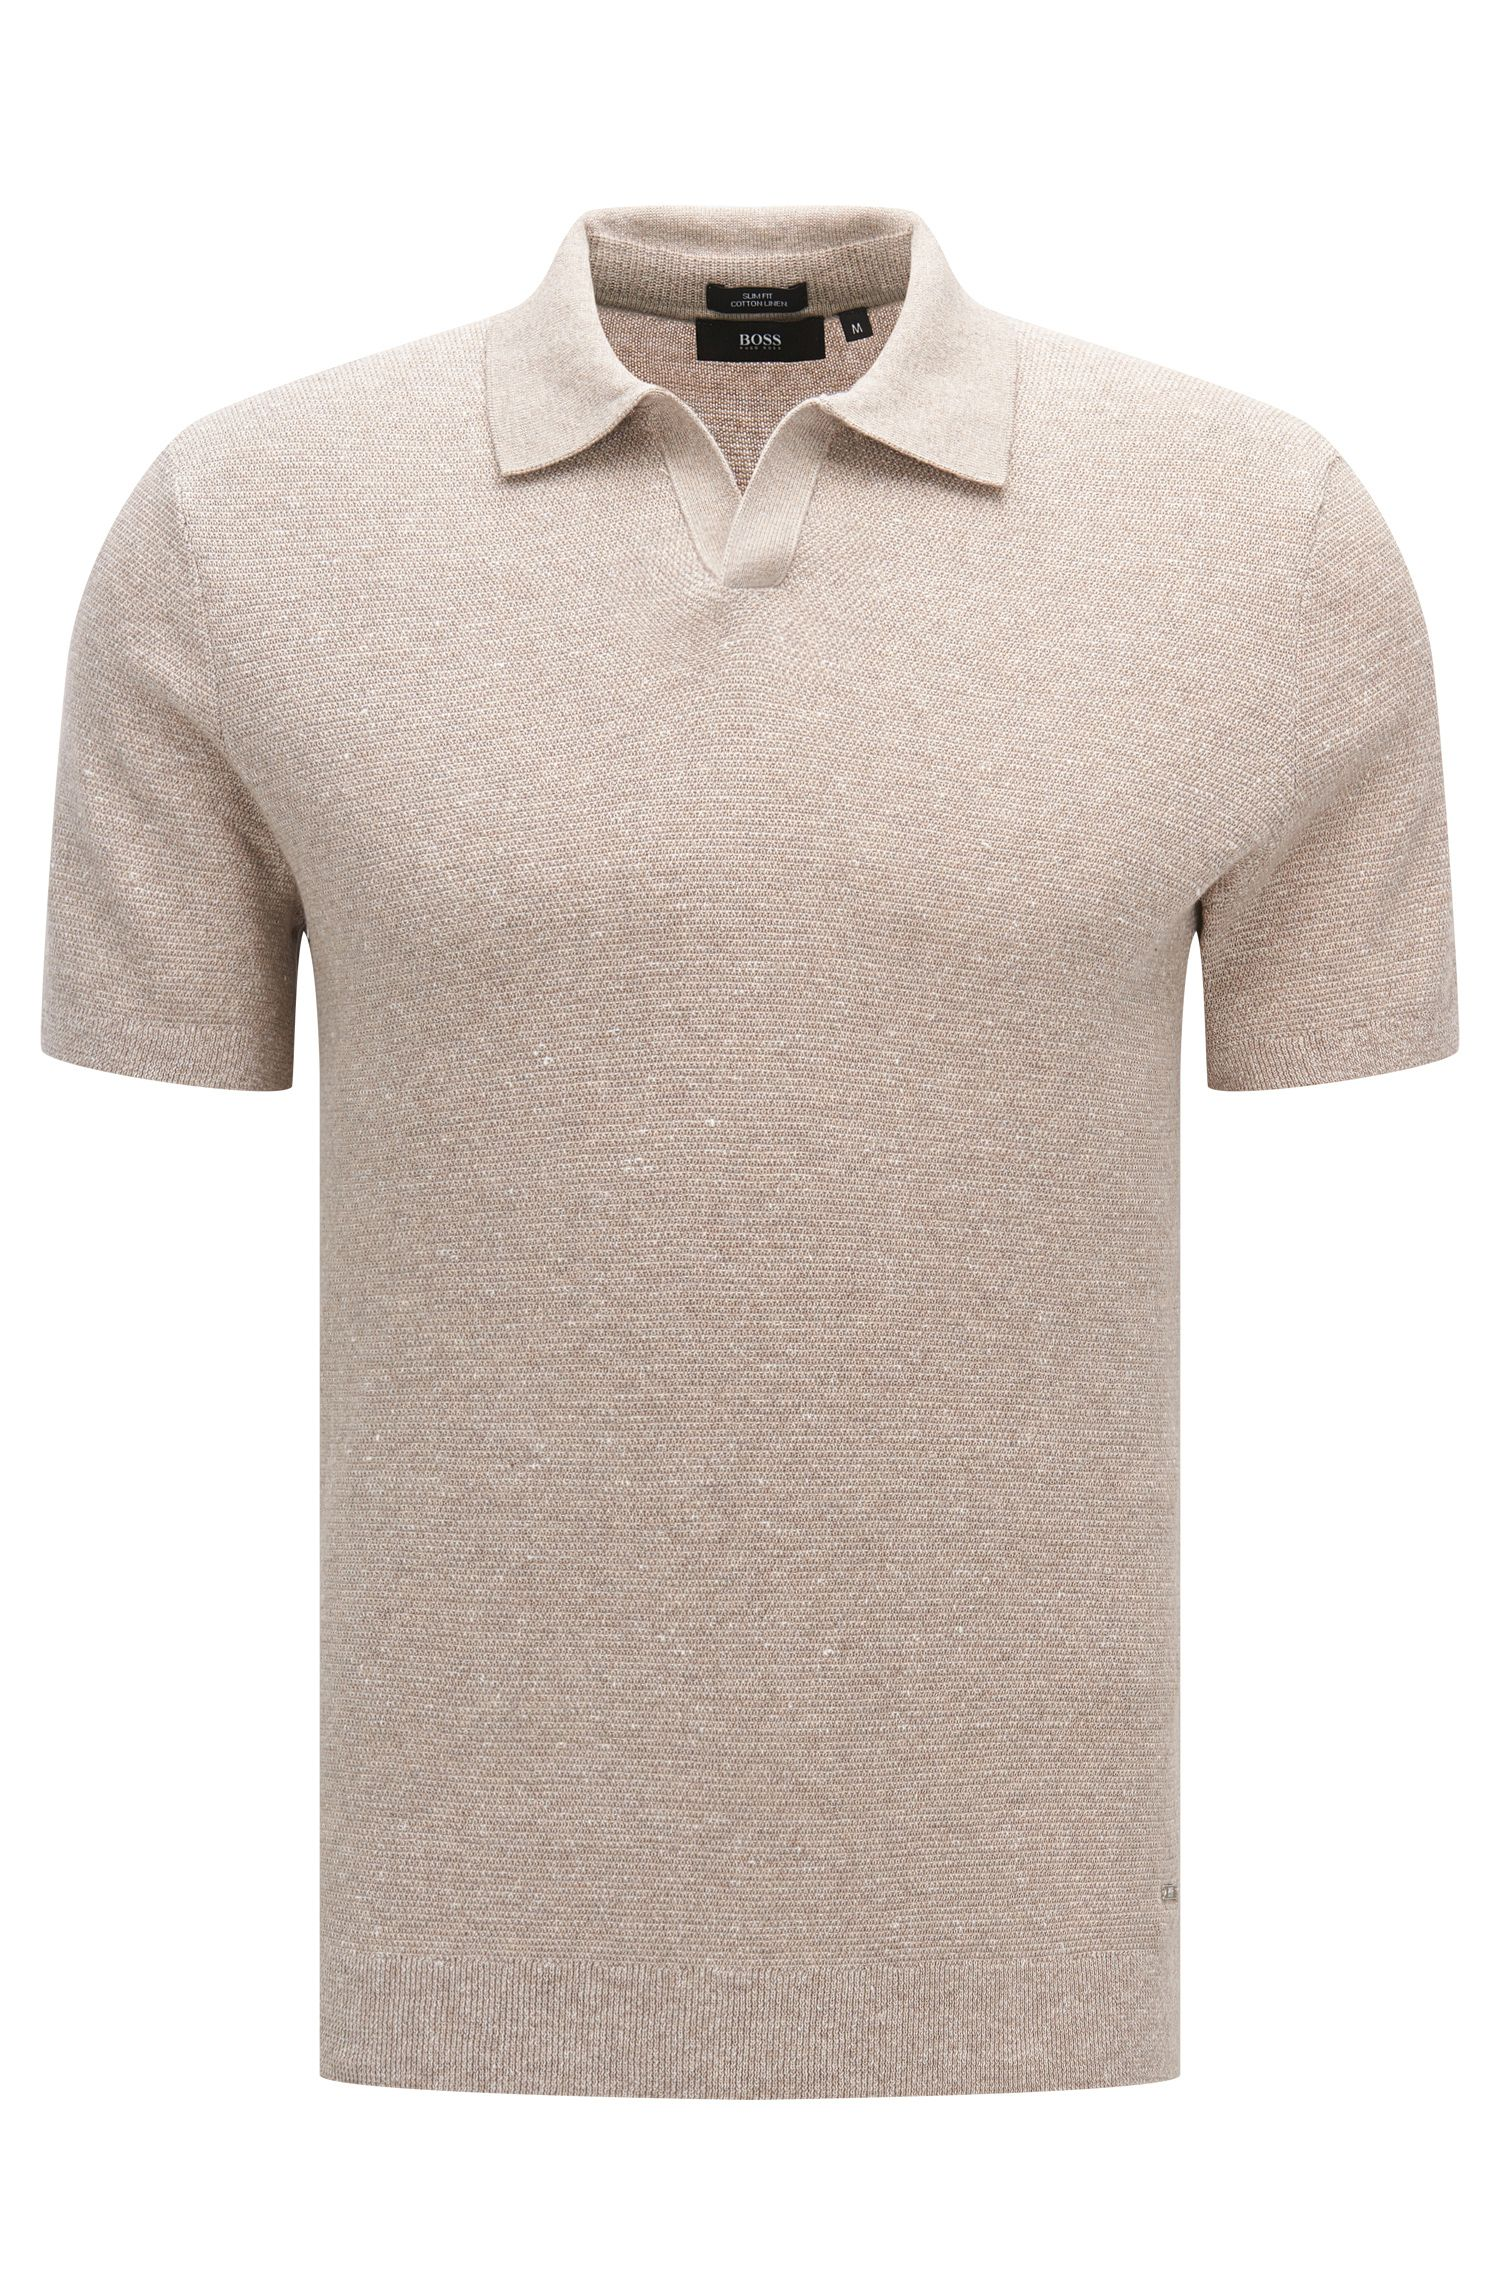 Slim-fit short-sleeved sweater in cotton blend with linen: 'Orenzo'